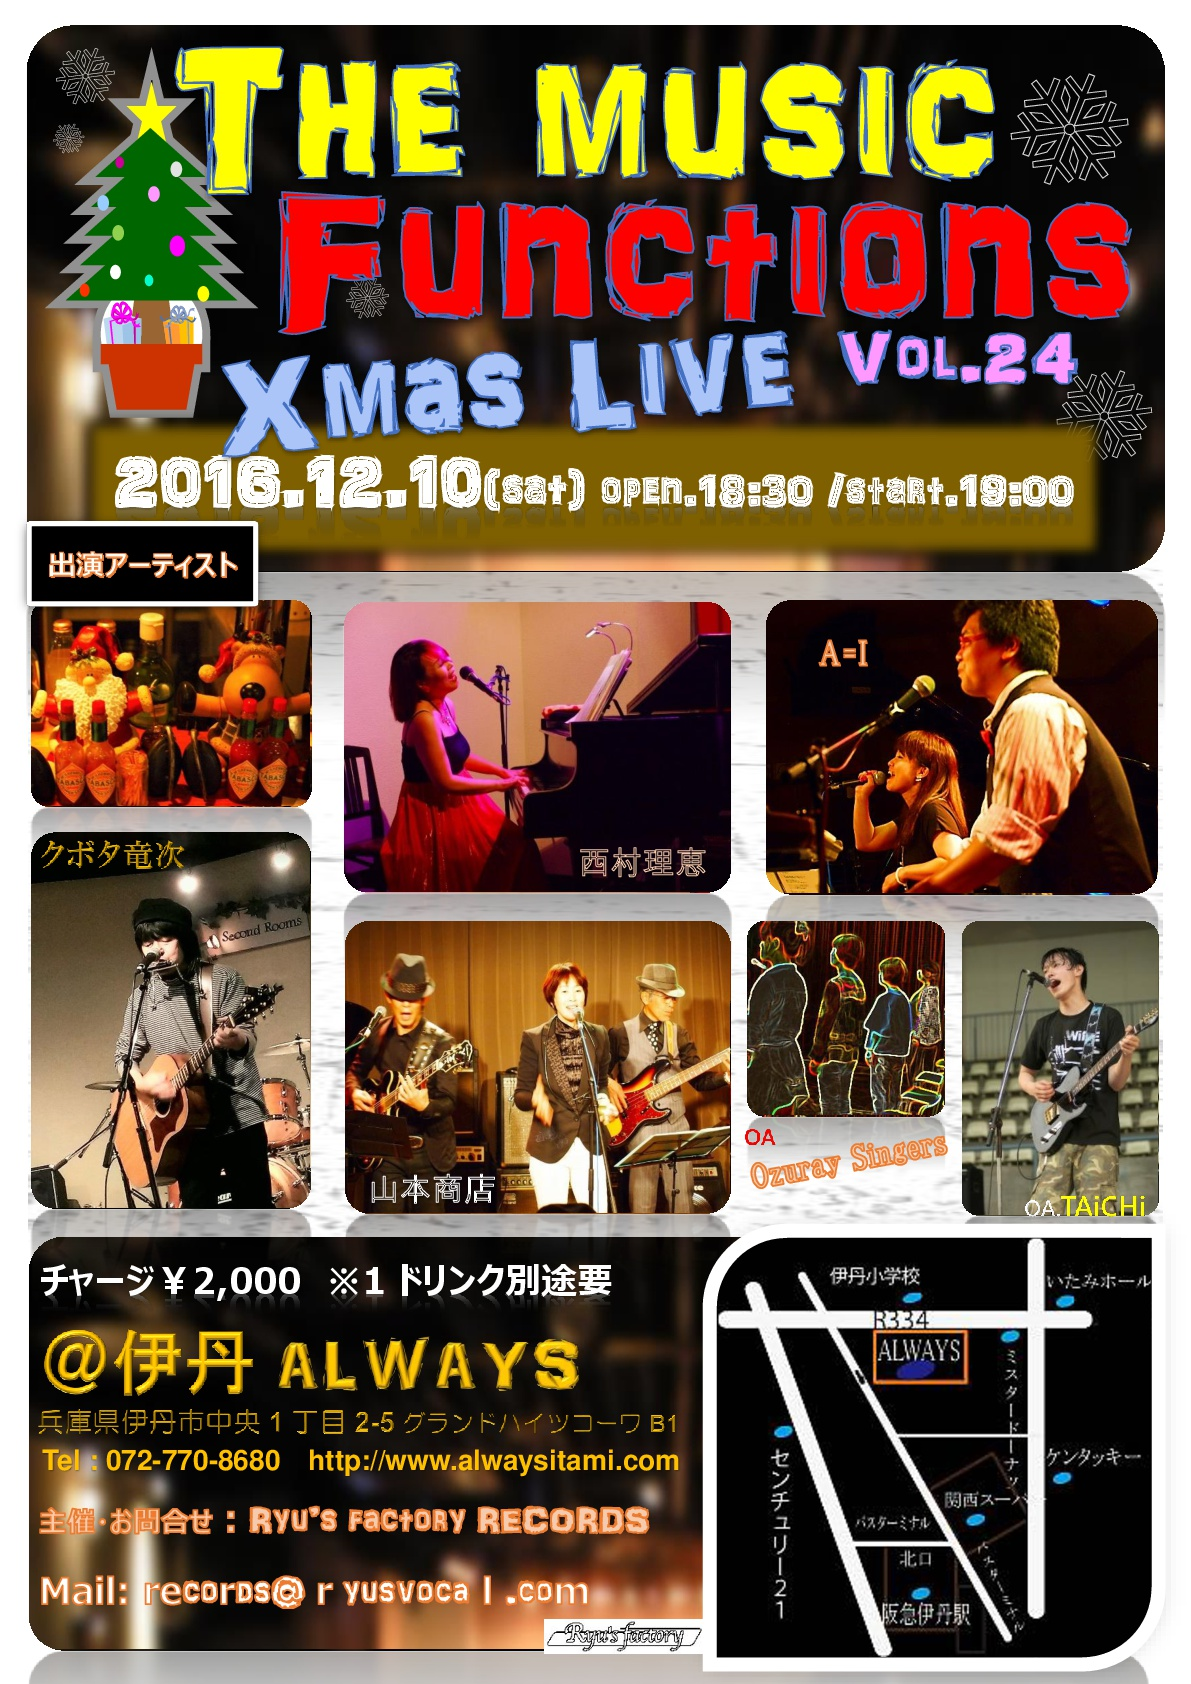 Ryu'sイベント The music functions 2016 vol.24 Xmas LIVE